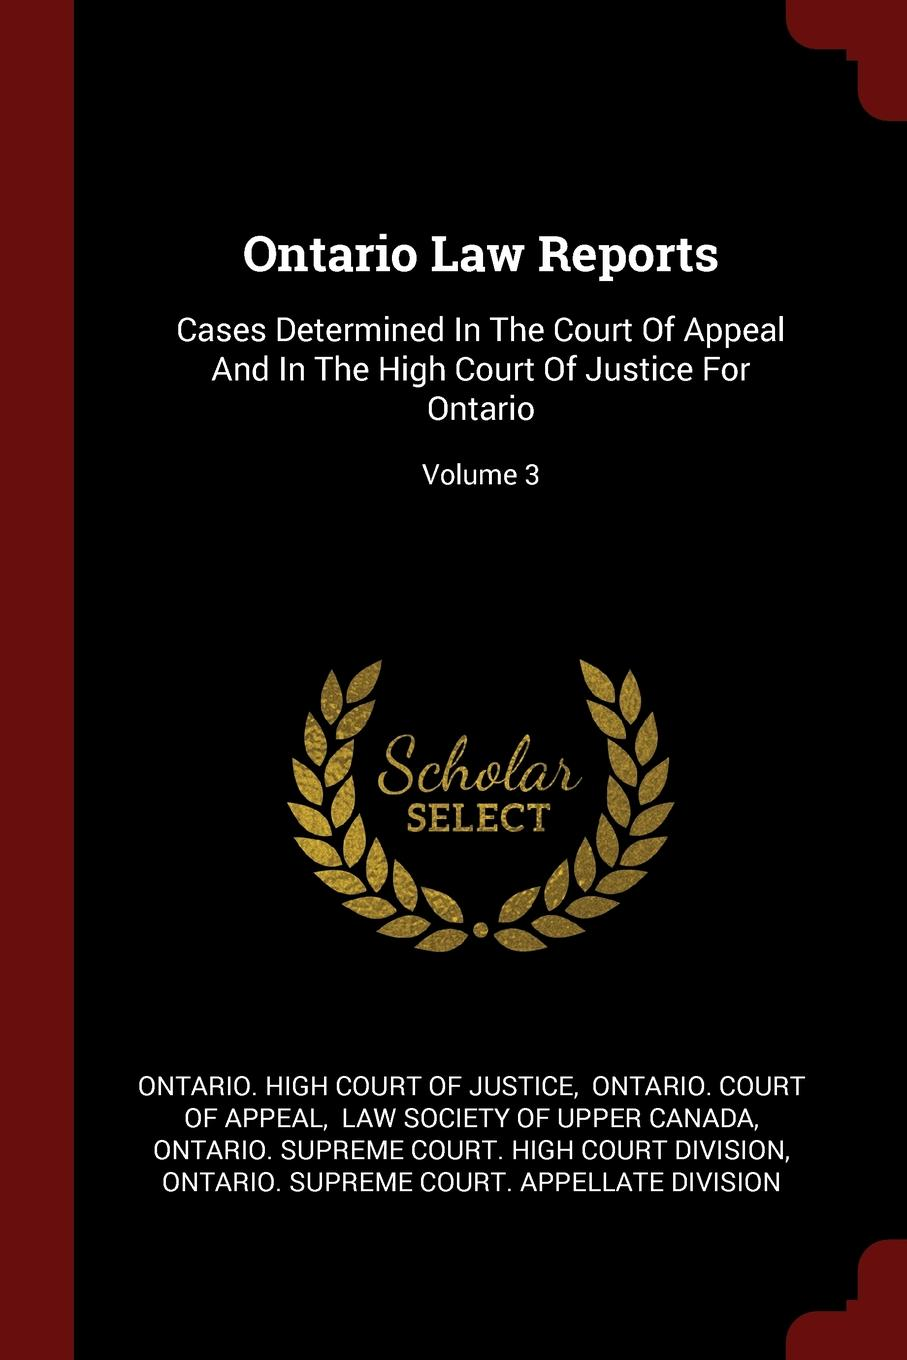 Ontario Law Reports. Cases Determined In The Court Of Appeal And In The High Court Of Justice For Ontario; Volume 3